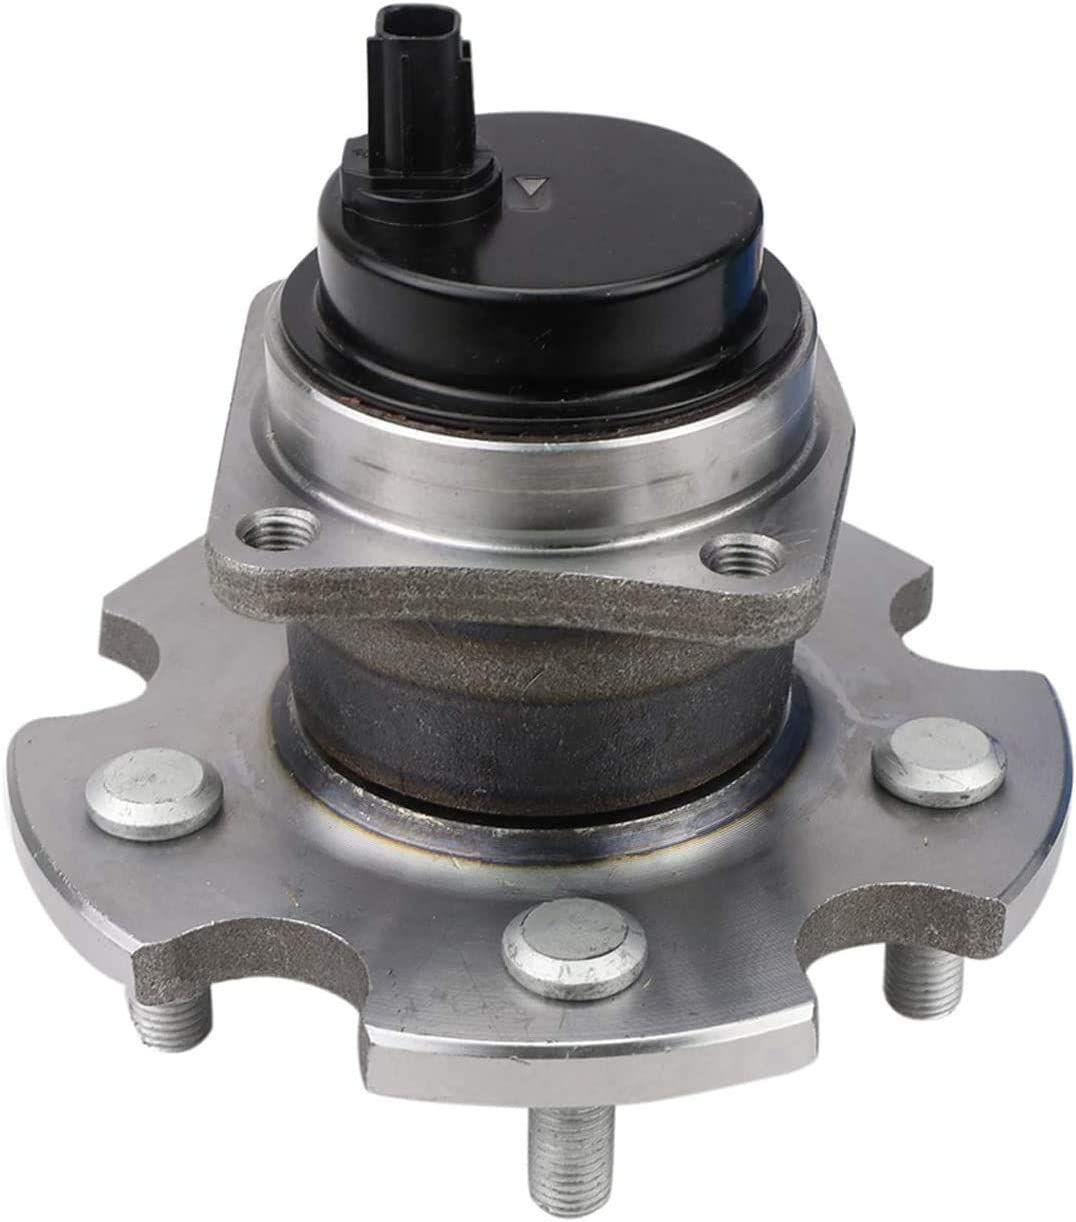 NYC Autoparts - 1PC Rear Boston Mall Wheel Hub 2009 Assembly Special price for a limited time and for Bearing